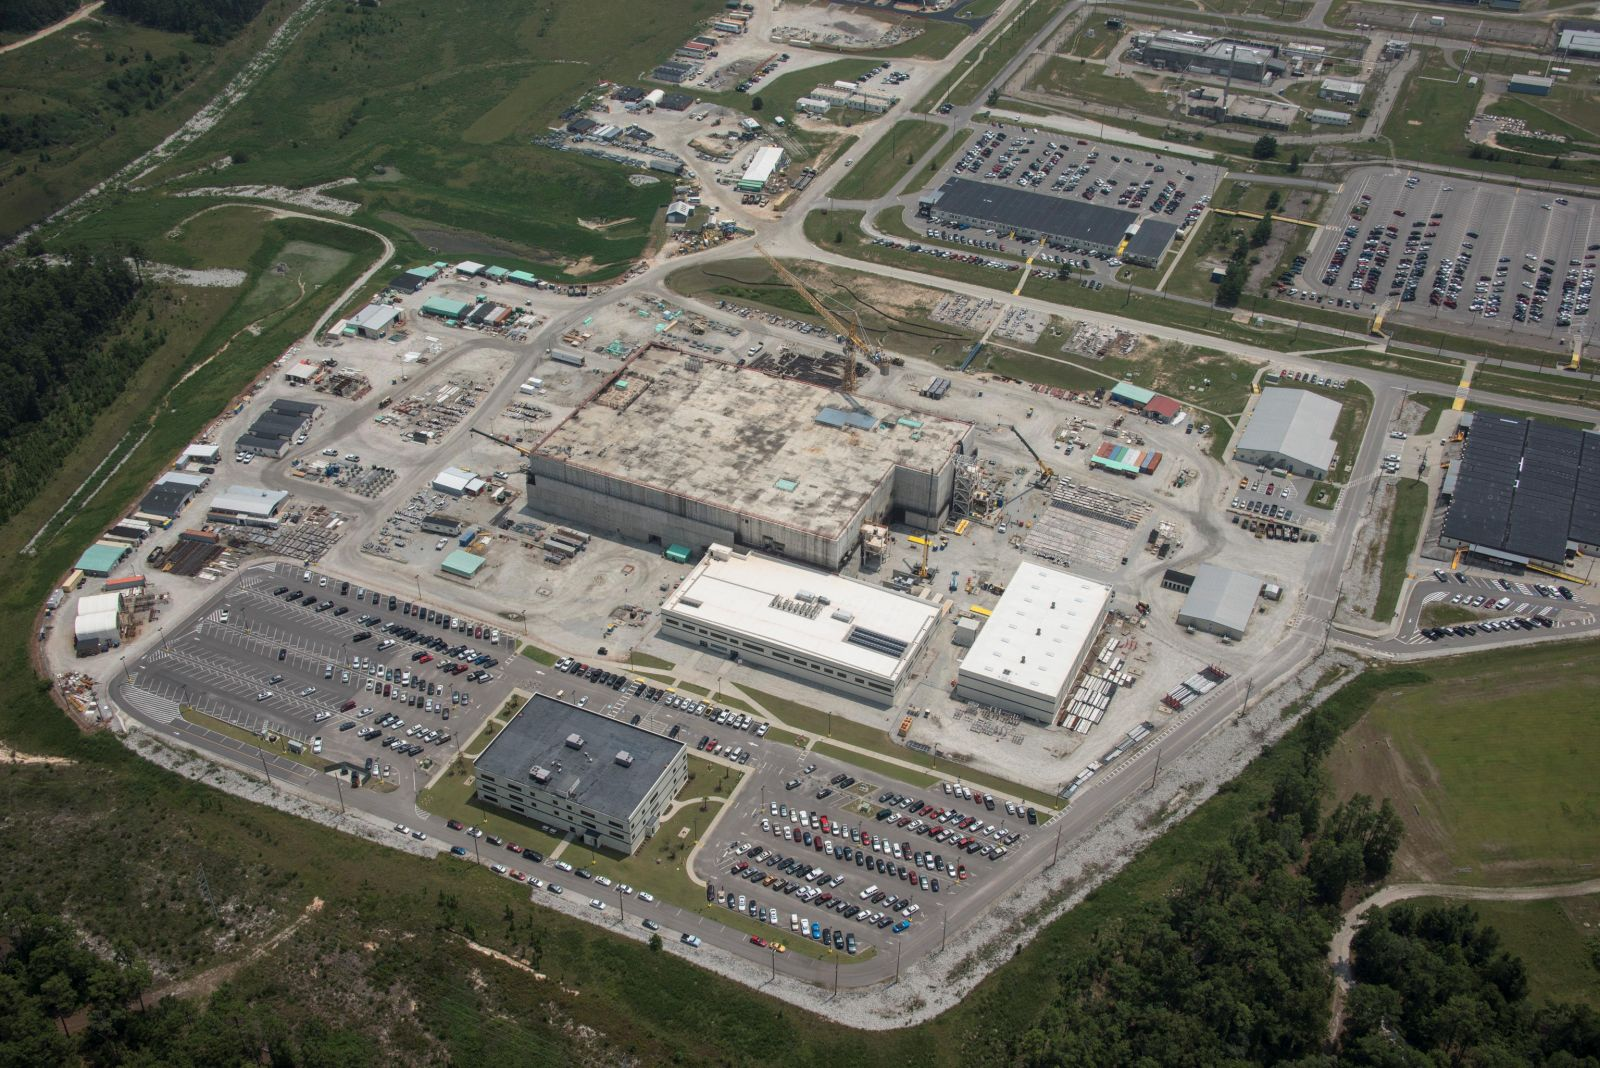 The mixed-oxide fuel plant under construction at Savannah River Site has been targed for elimination in President Trump's budget proposal. (Photo/U.S. Department of Energy)